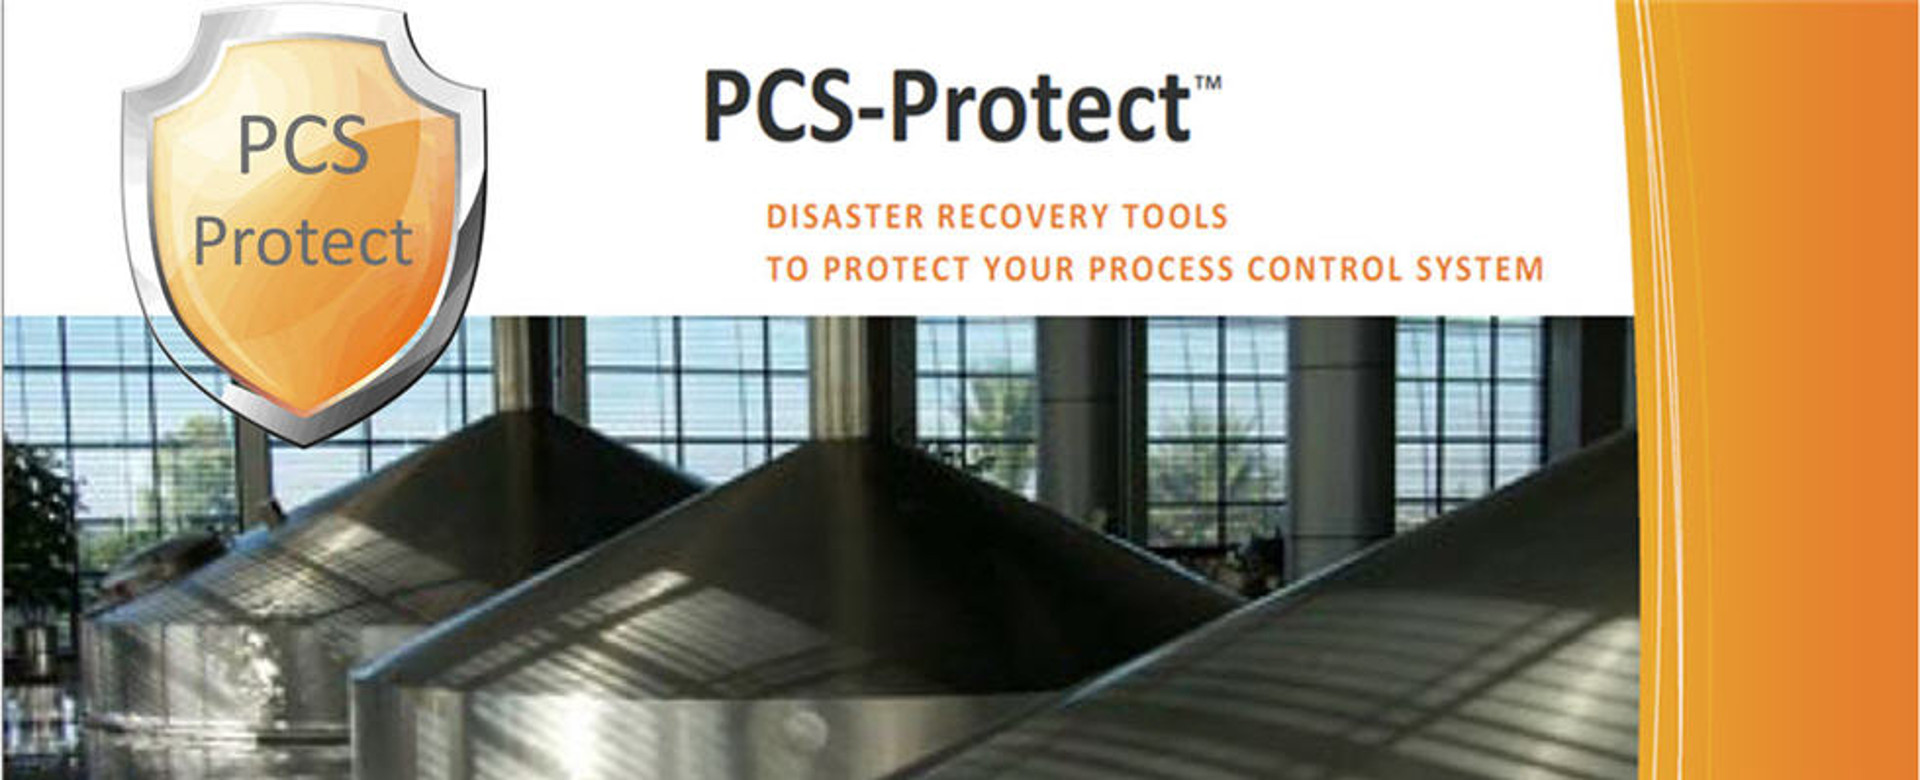 PCS-Protect Disaster Recovery Tools